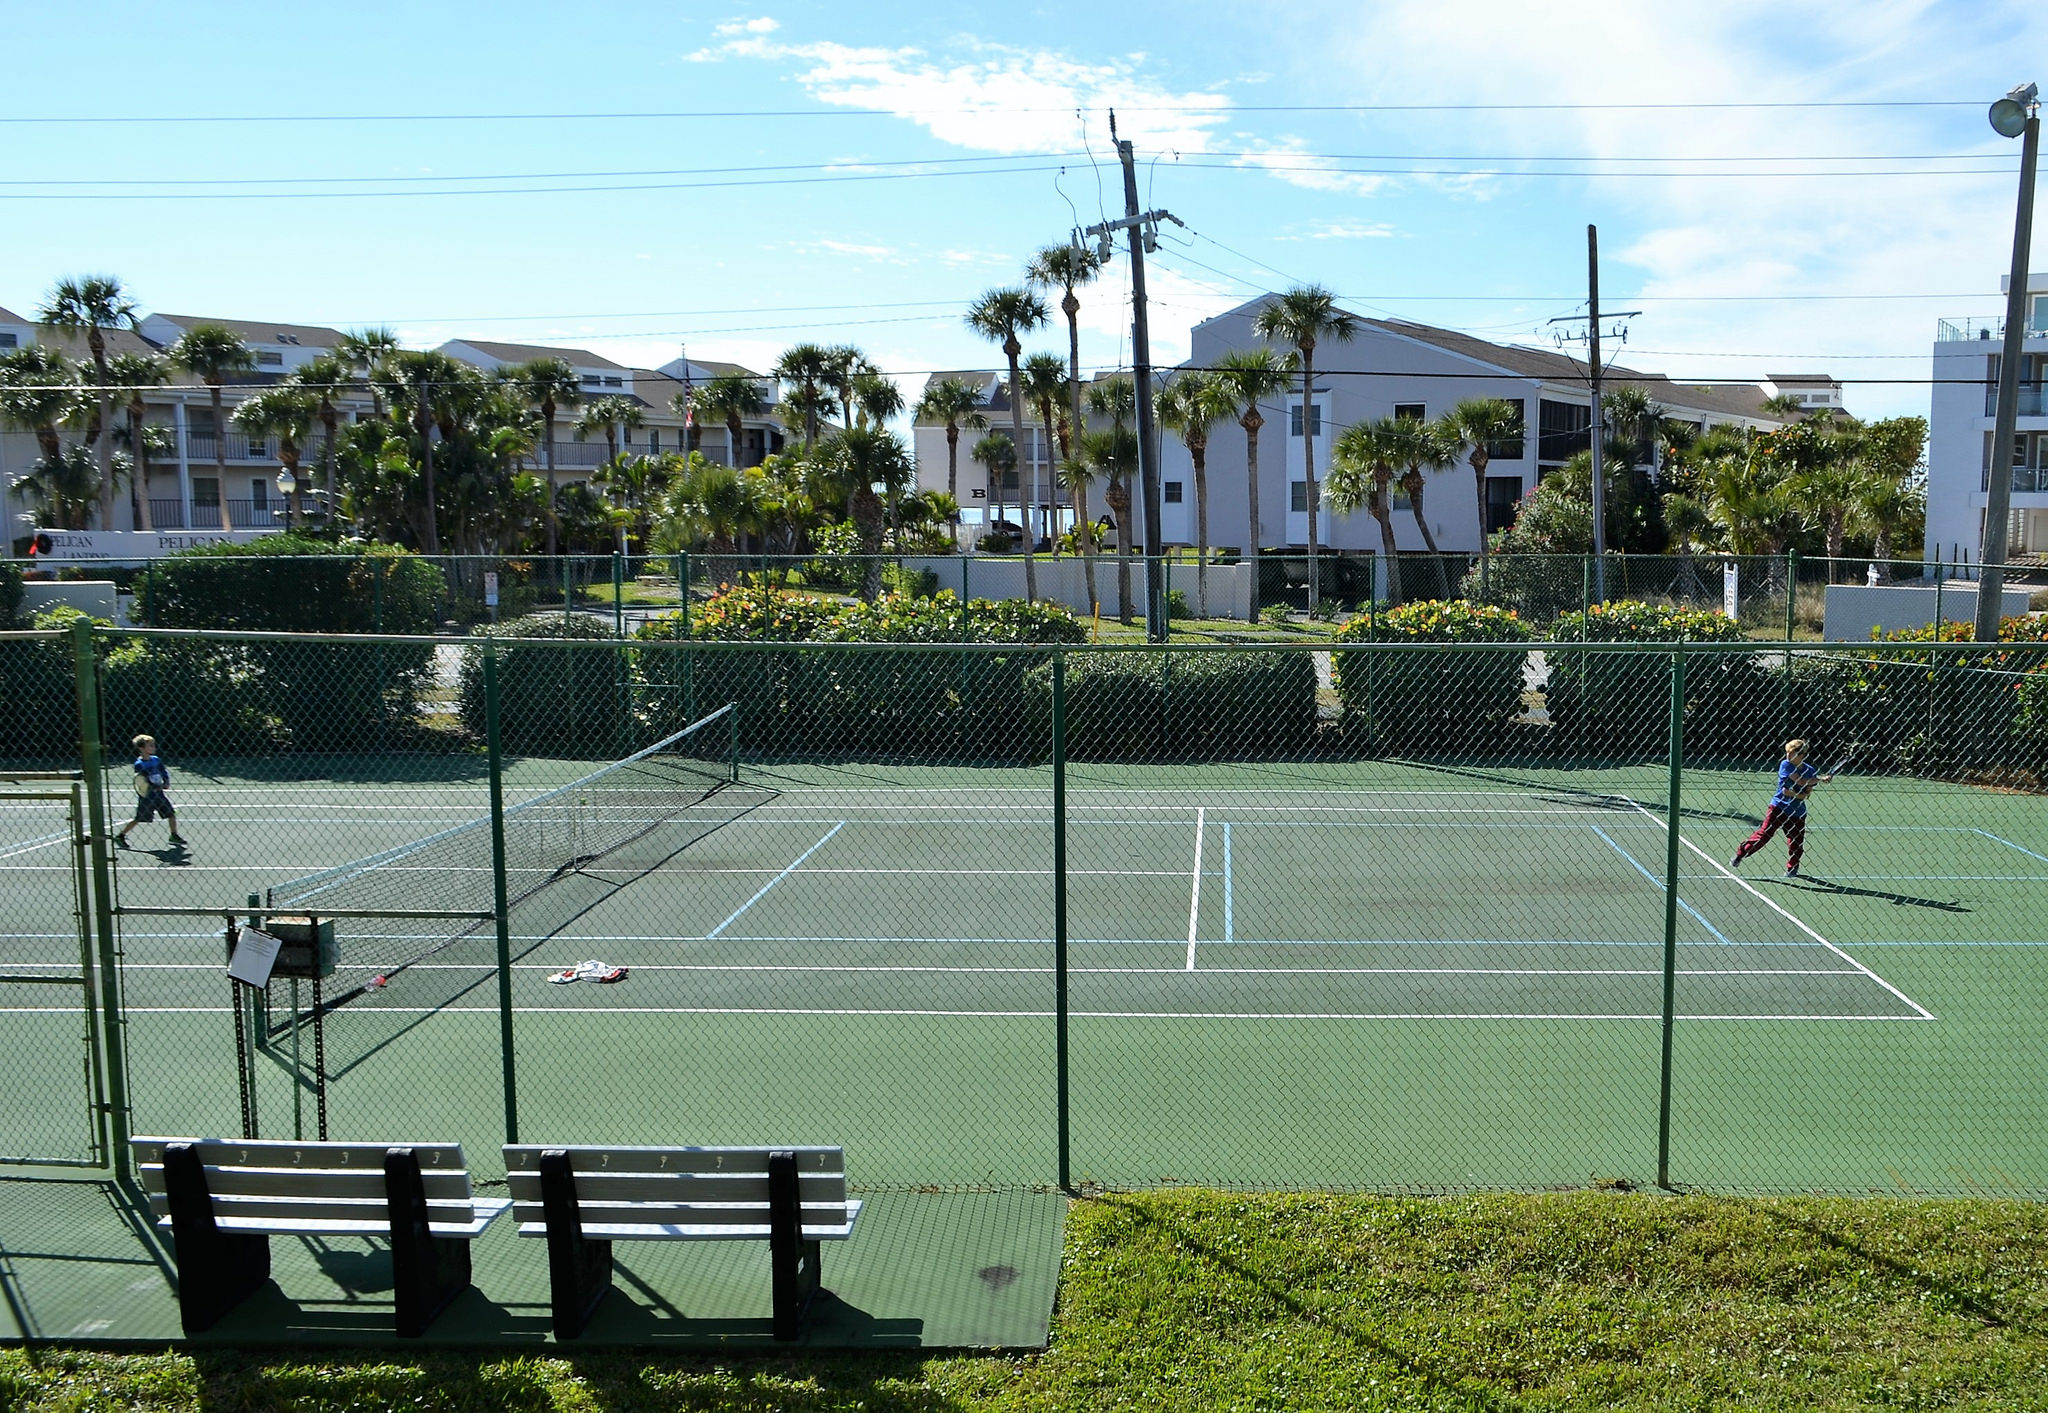 Where to stay in Manasota Key Florida - Playing tenis at Pelican Landing